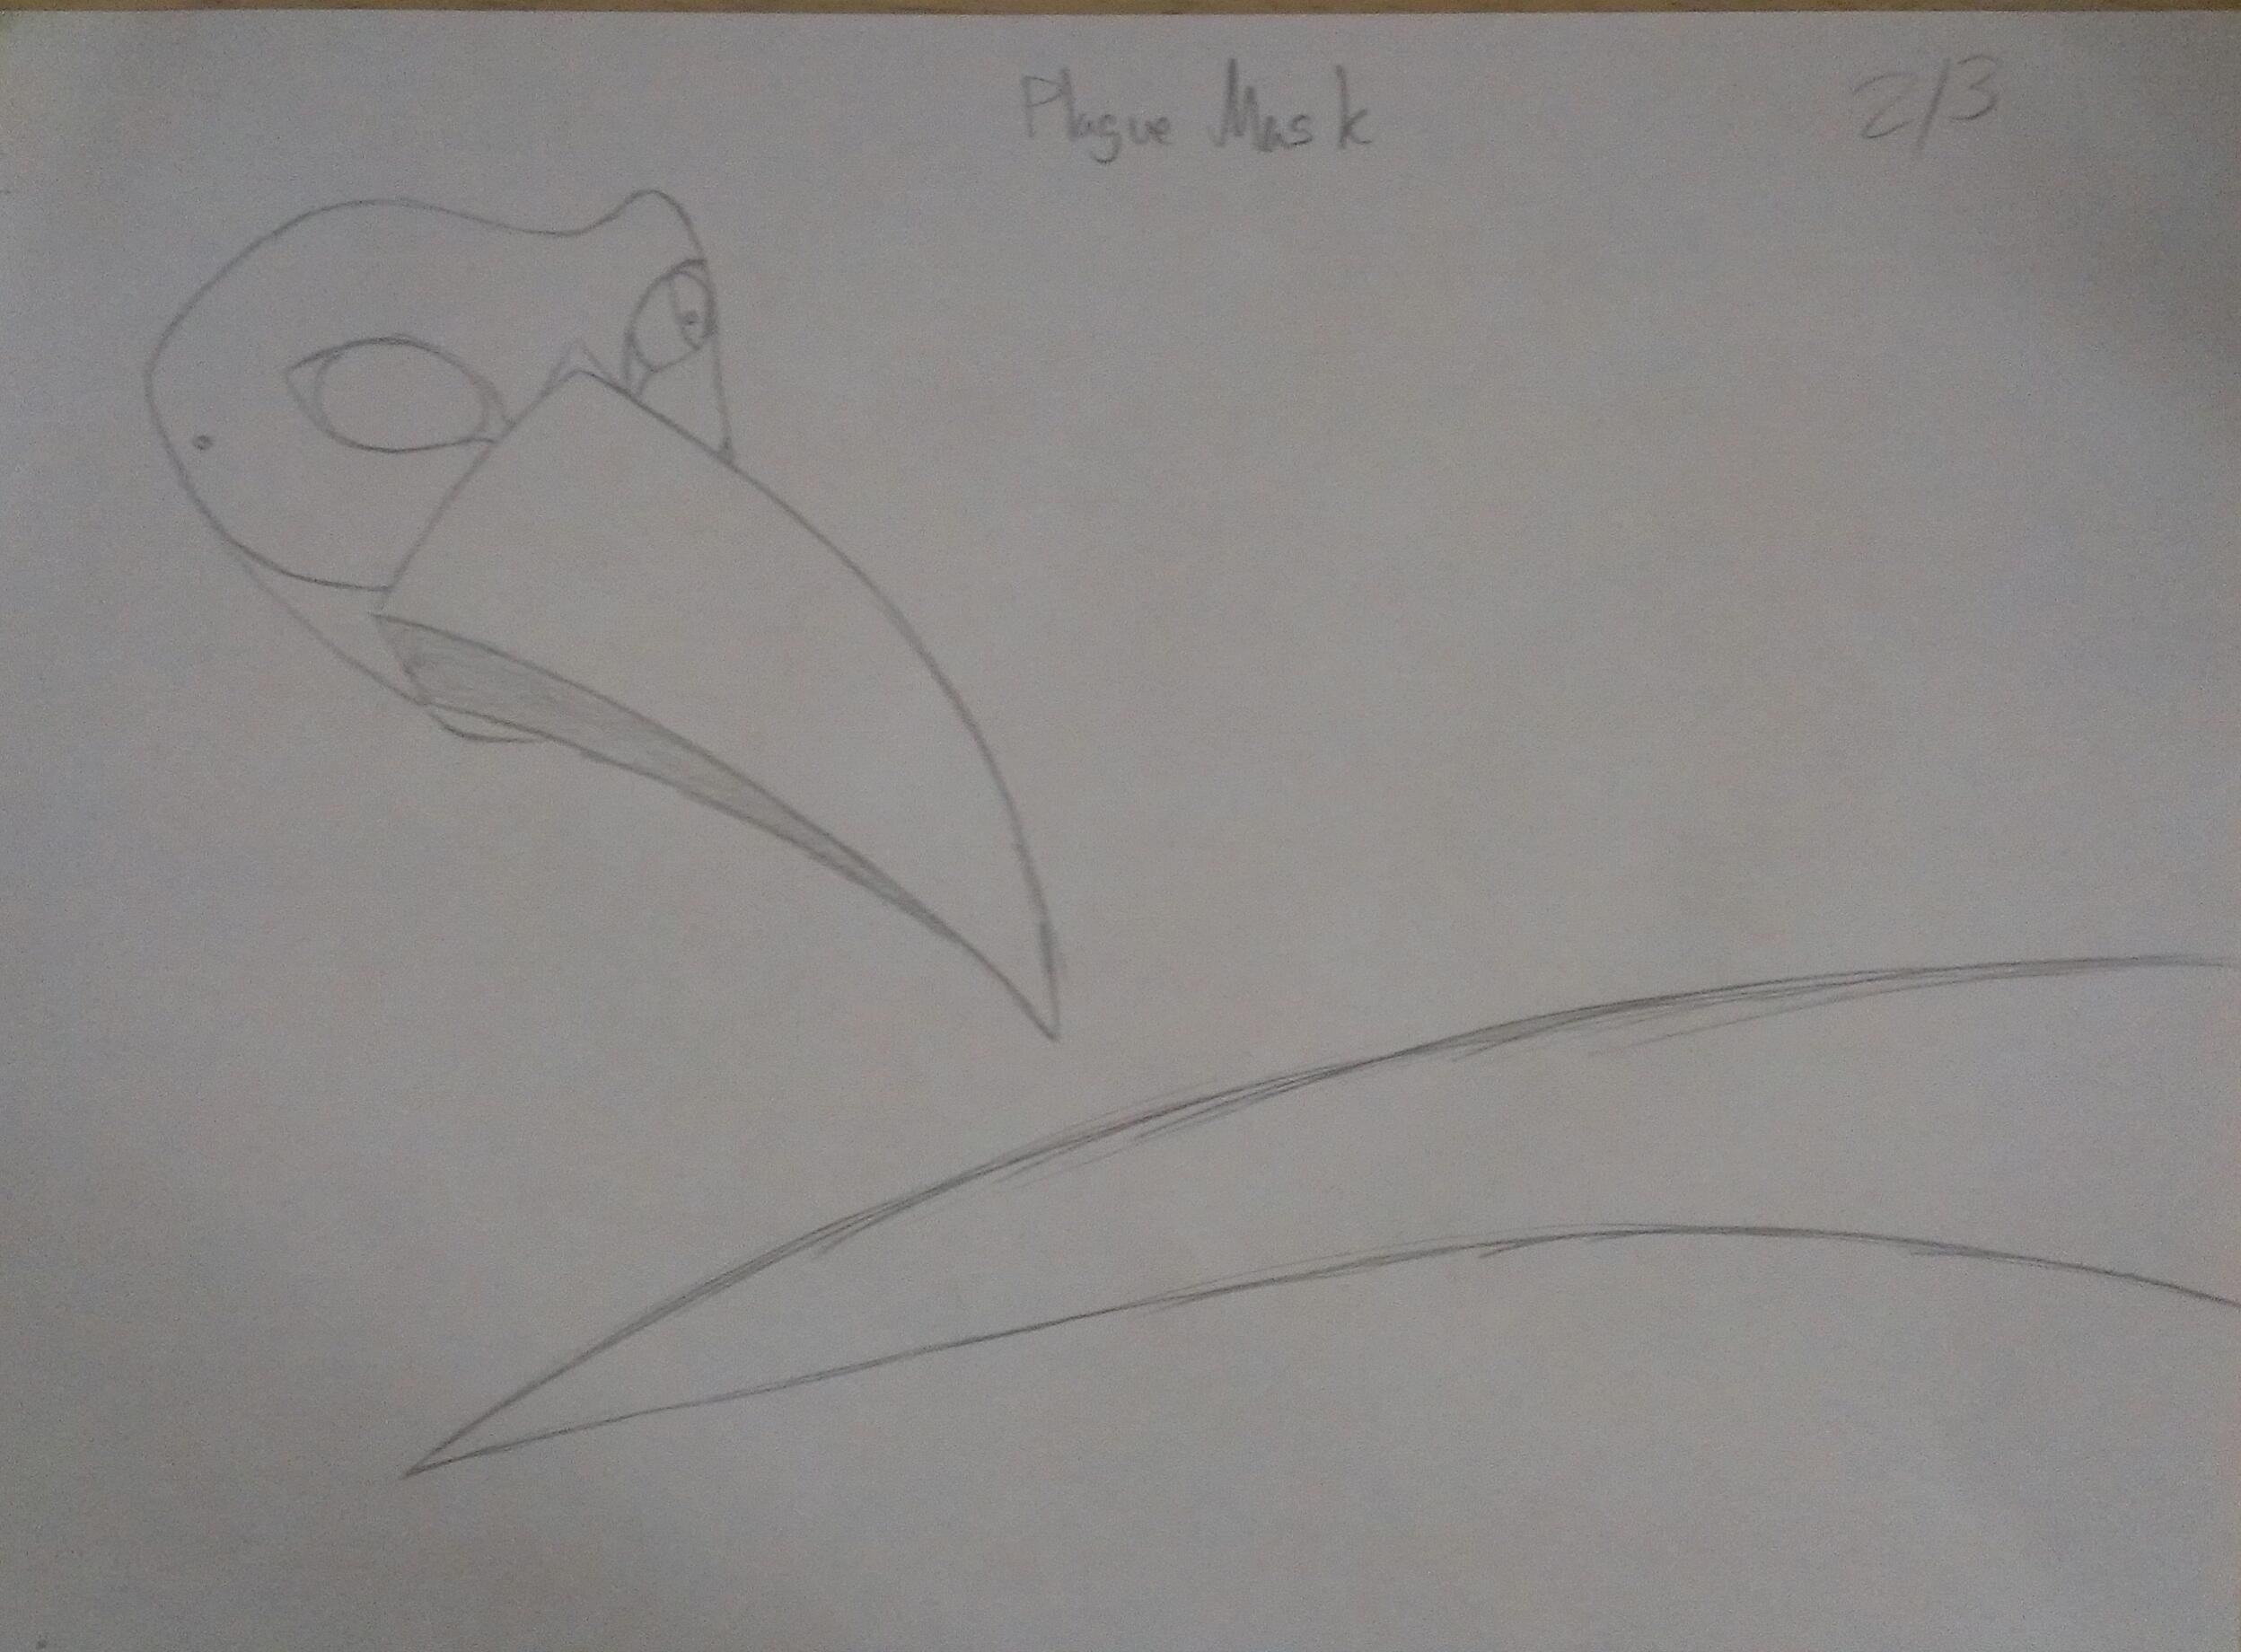 Mask template ii by synonym of antonym on deviantart for Synonym template